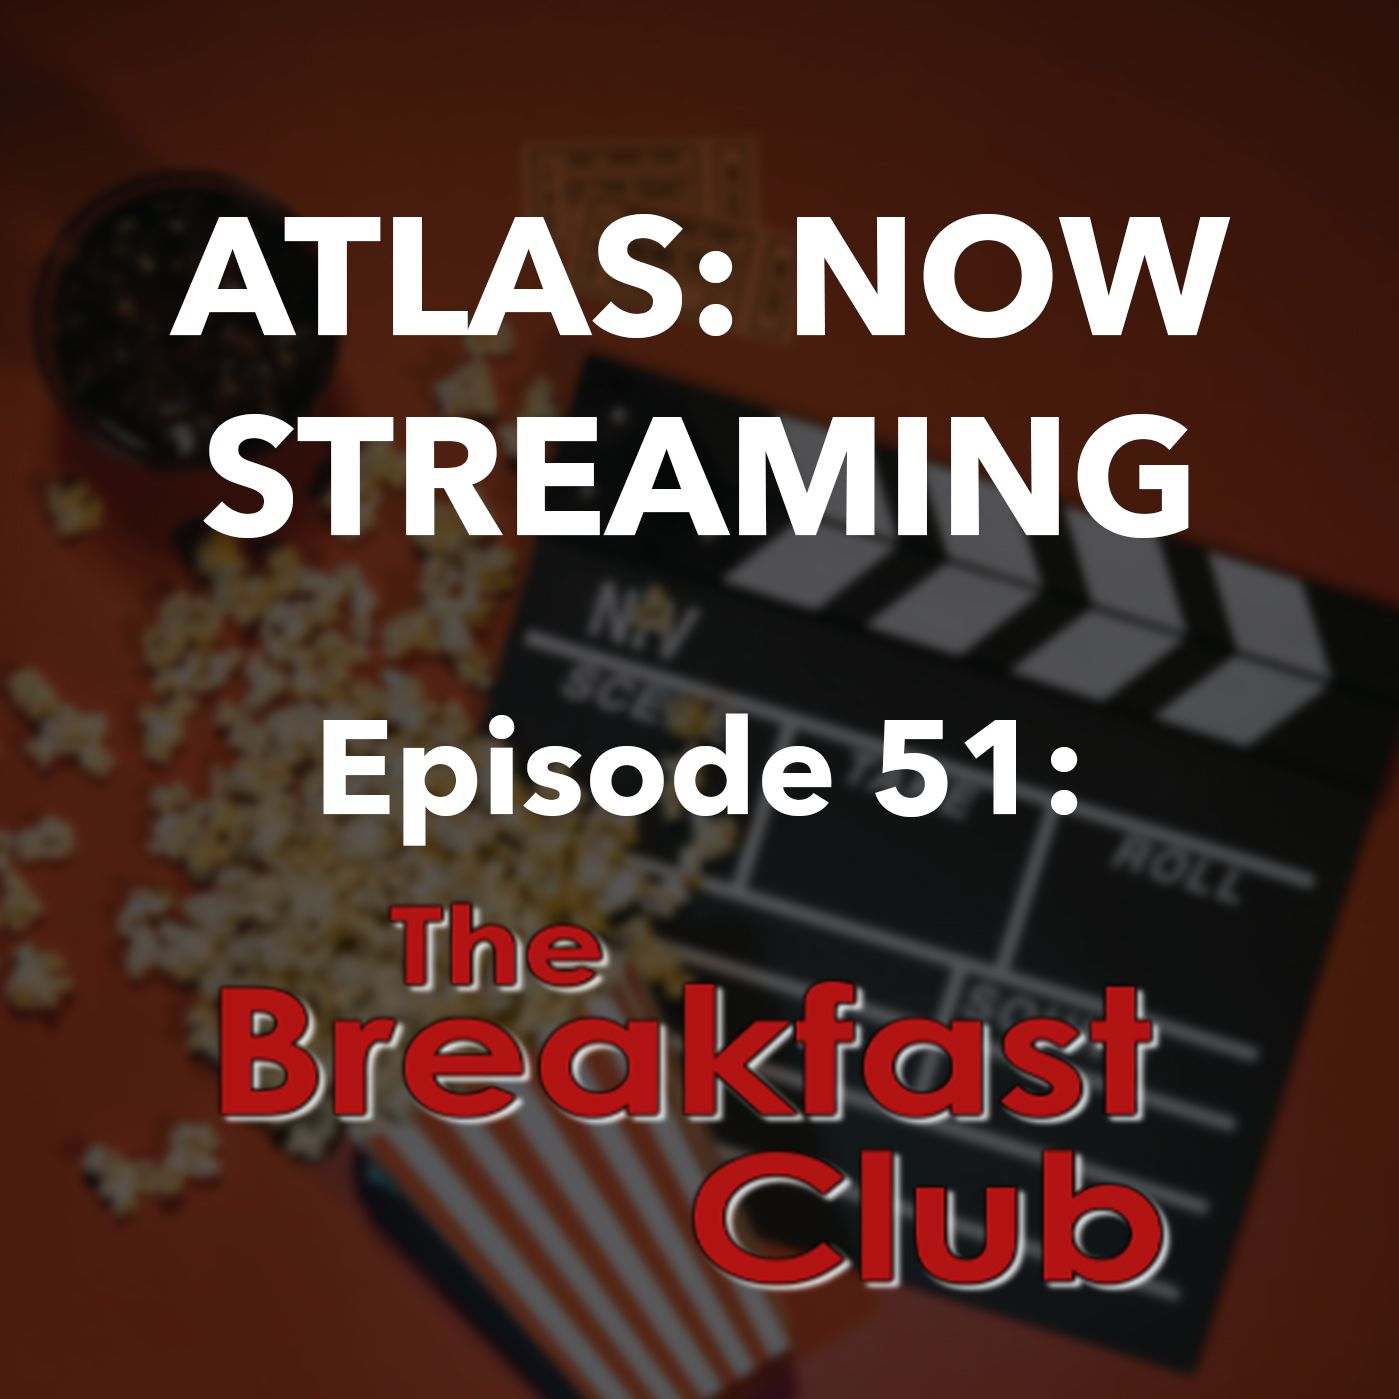 The Breakfast Club, 35th Anniversary - Atlas Now Streaming 51